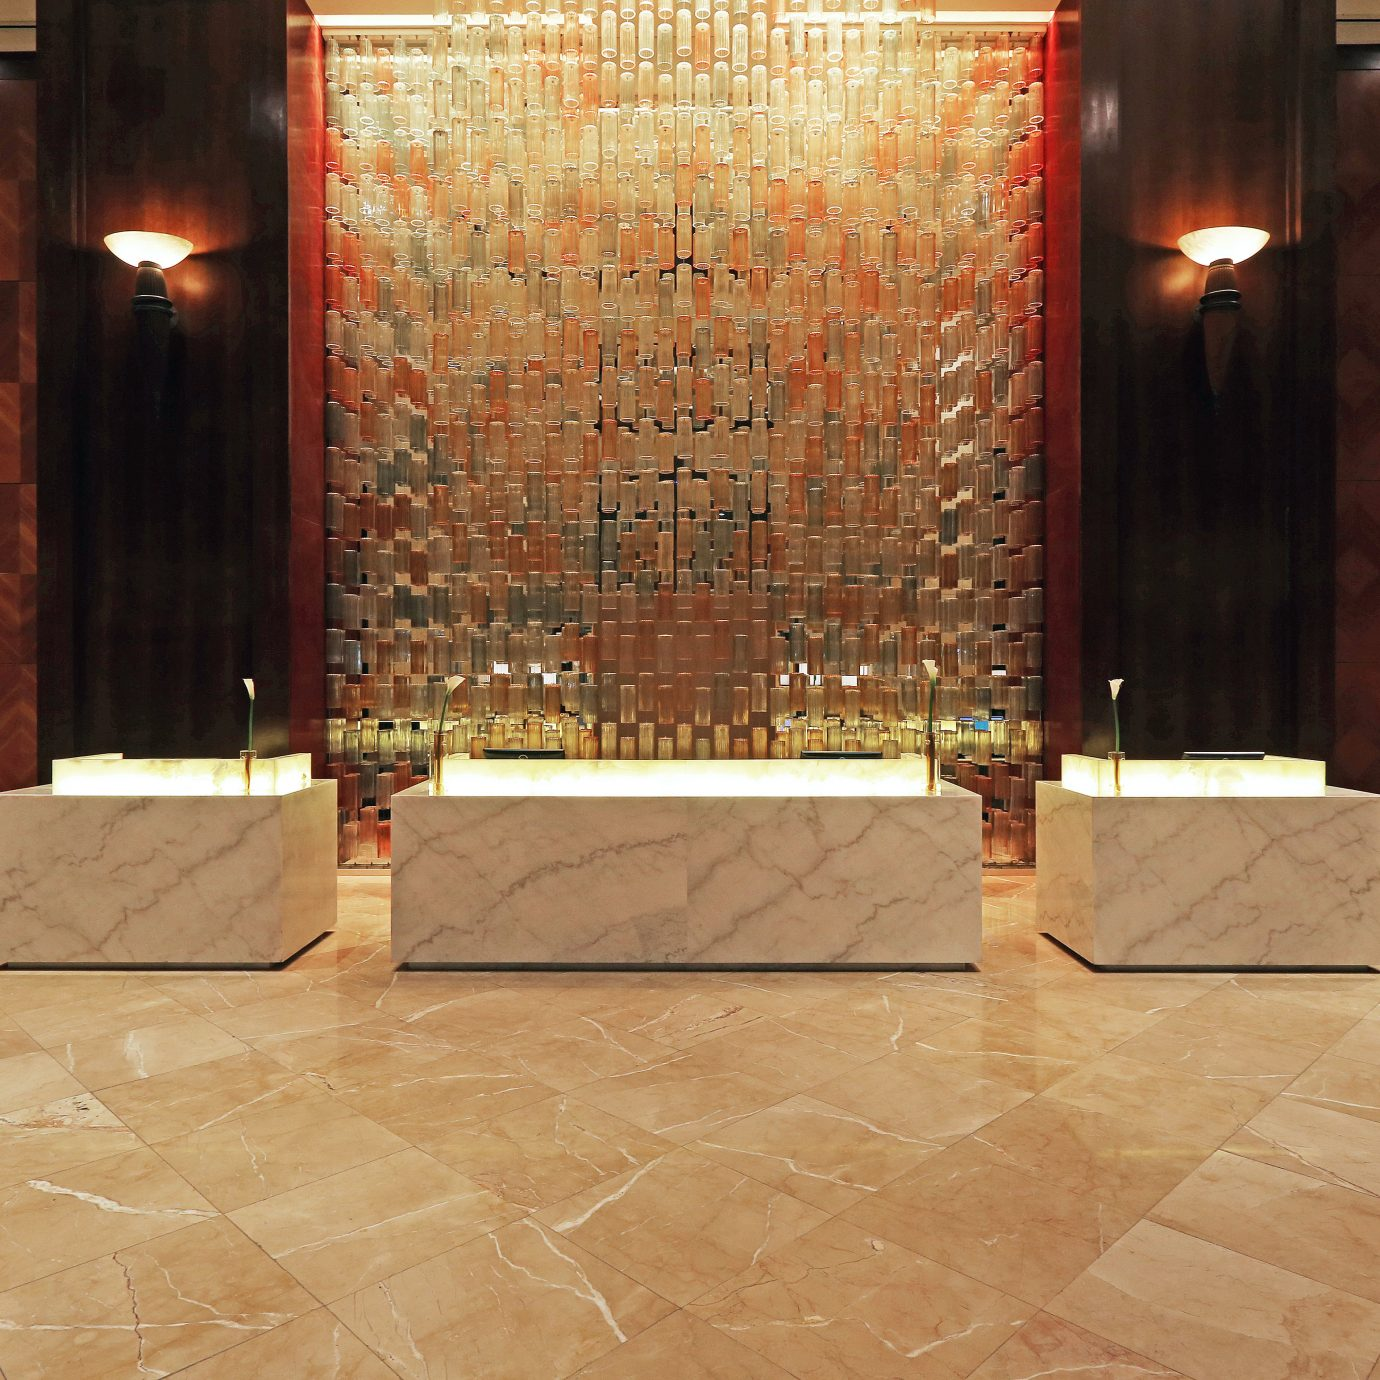 City Classic Resort flooring Lobby building hardwood wood flooring tile laminate flooring material stone